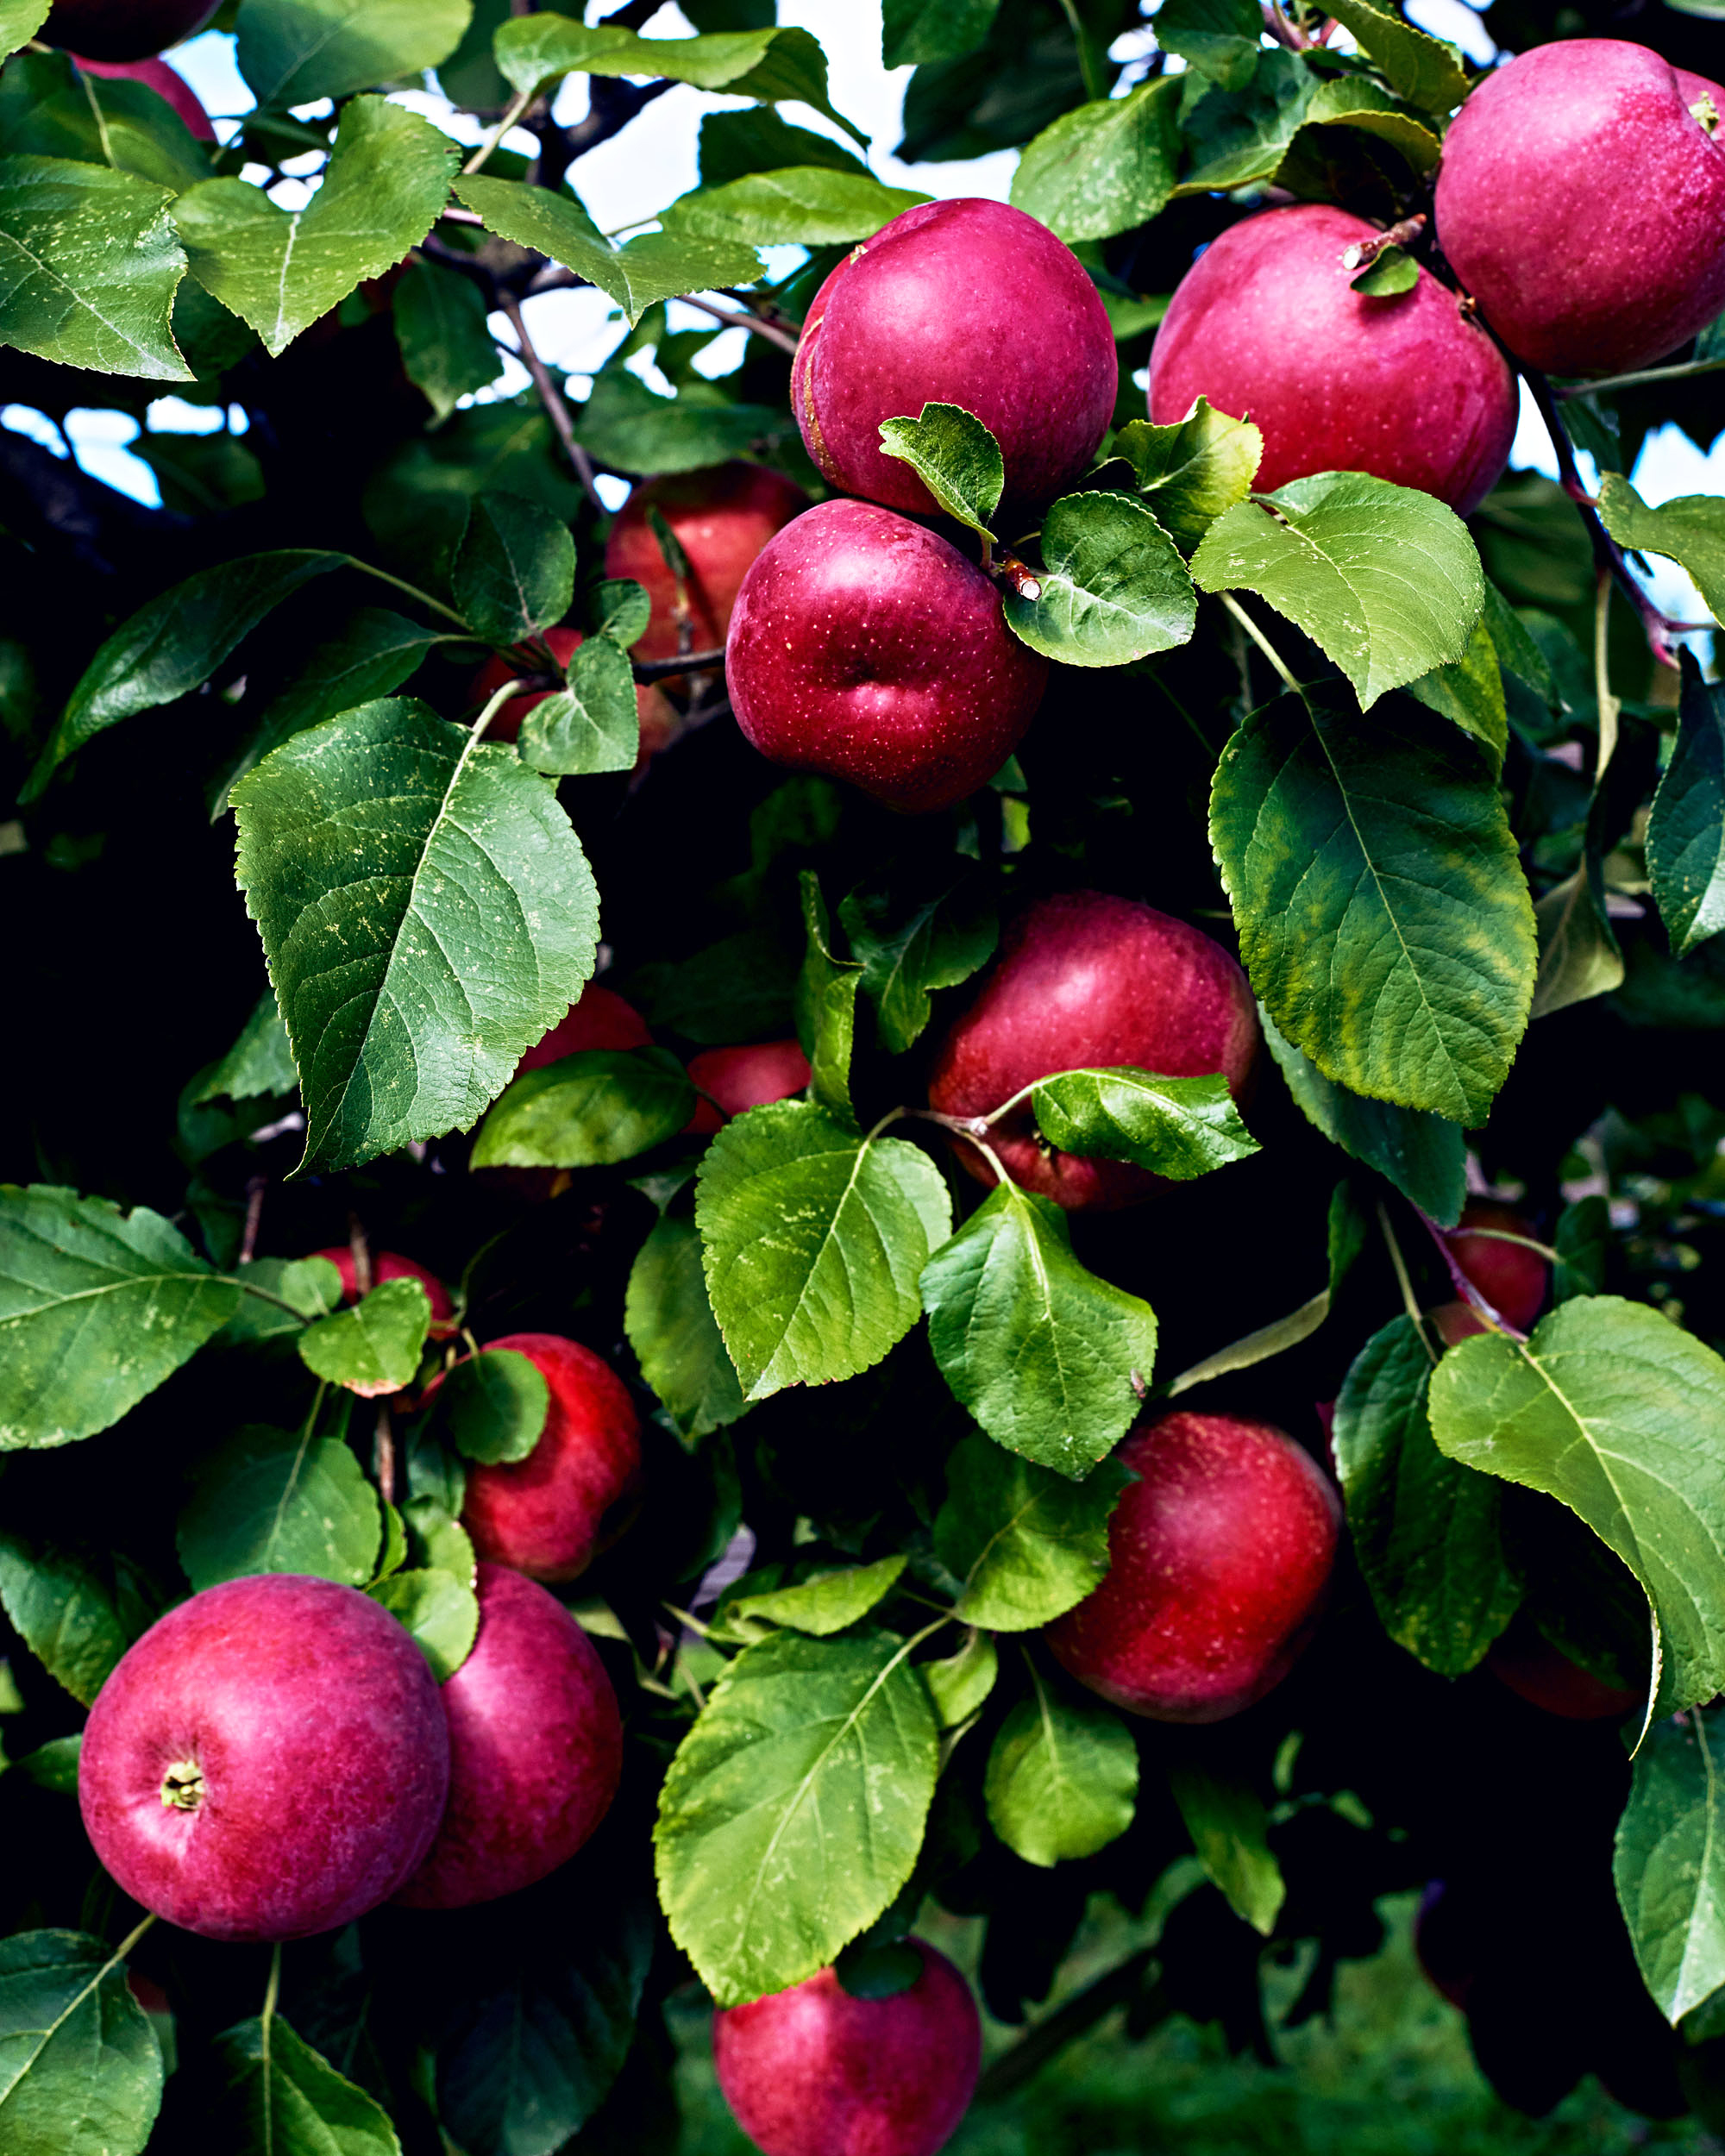 gravenstein apples on tree with leaves